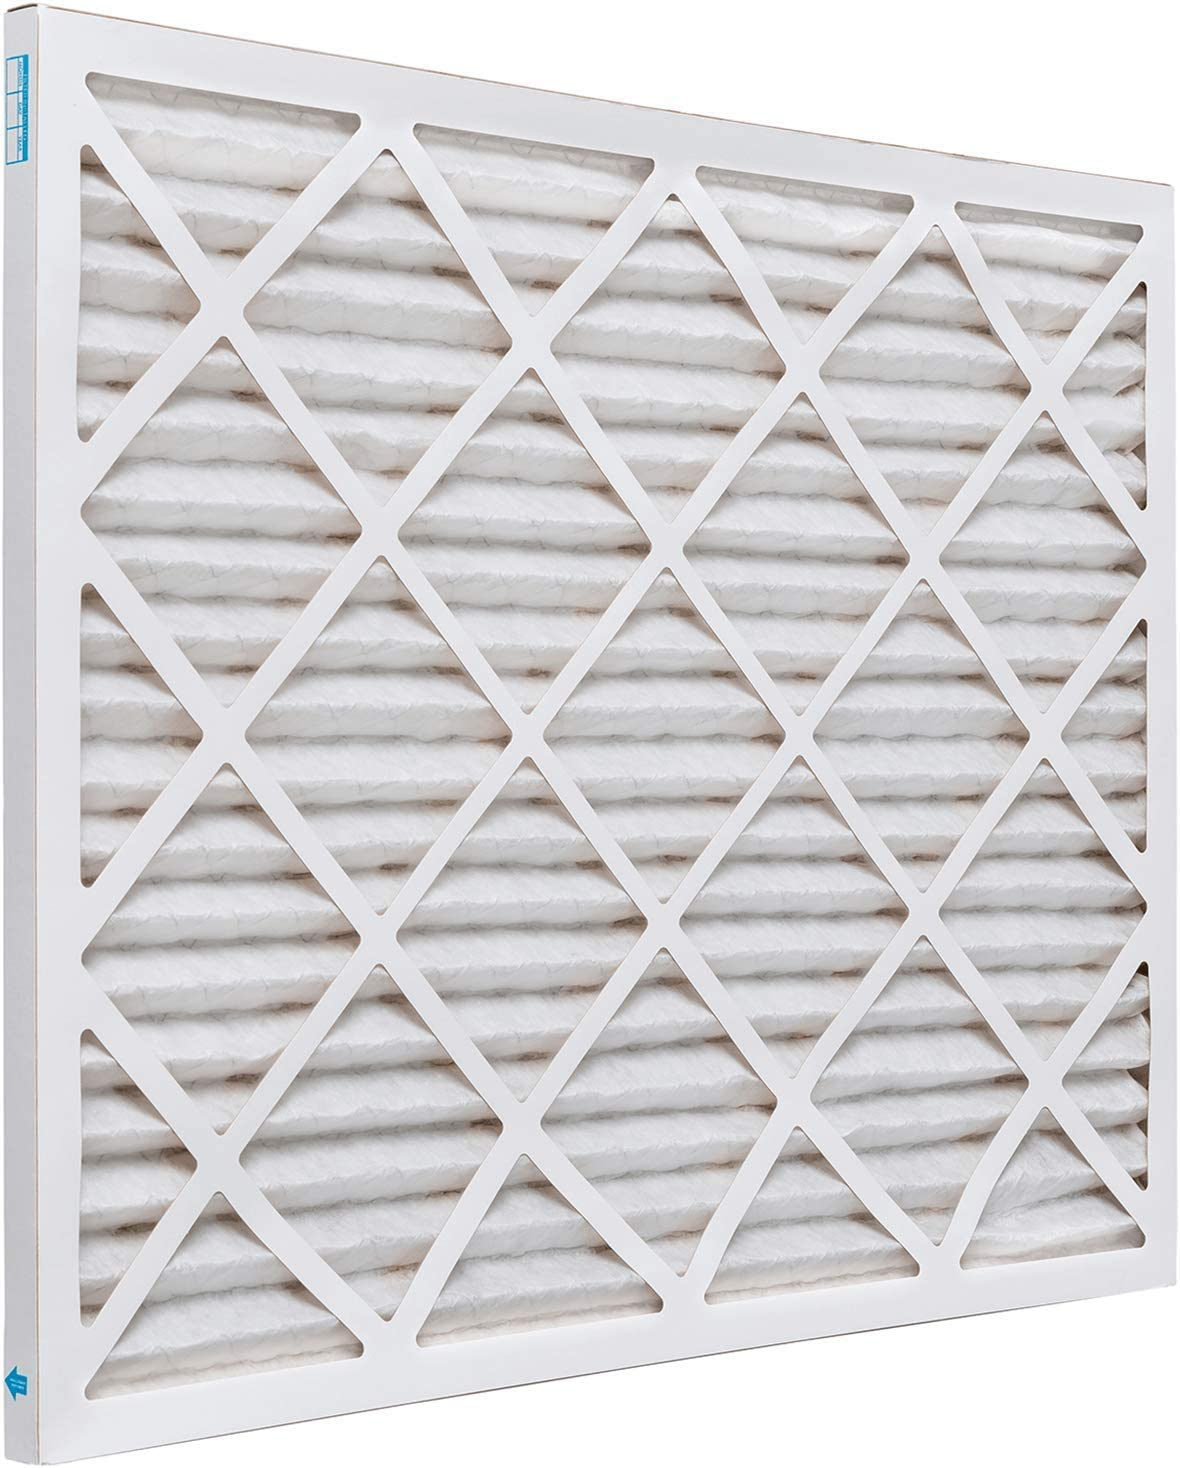 Nordic Pure 19/_1//2x21x1 Exact MERV 13 Pleated AC Furnace Air Filters 4 Pack